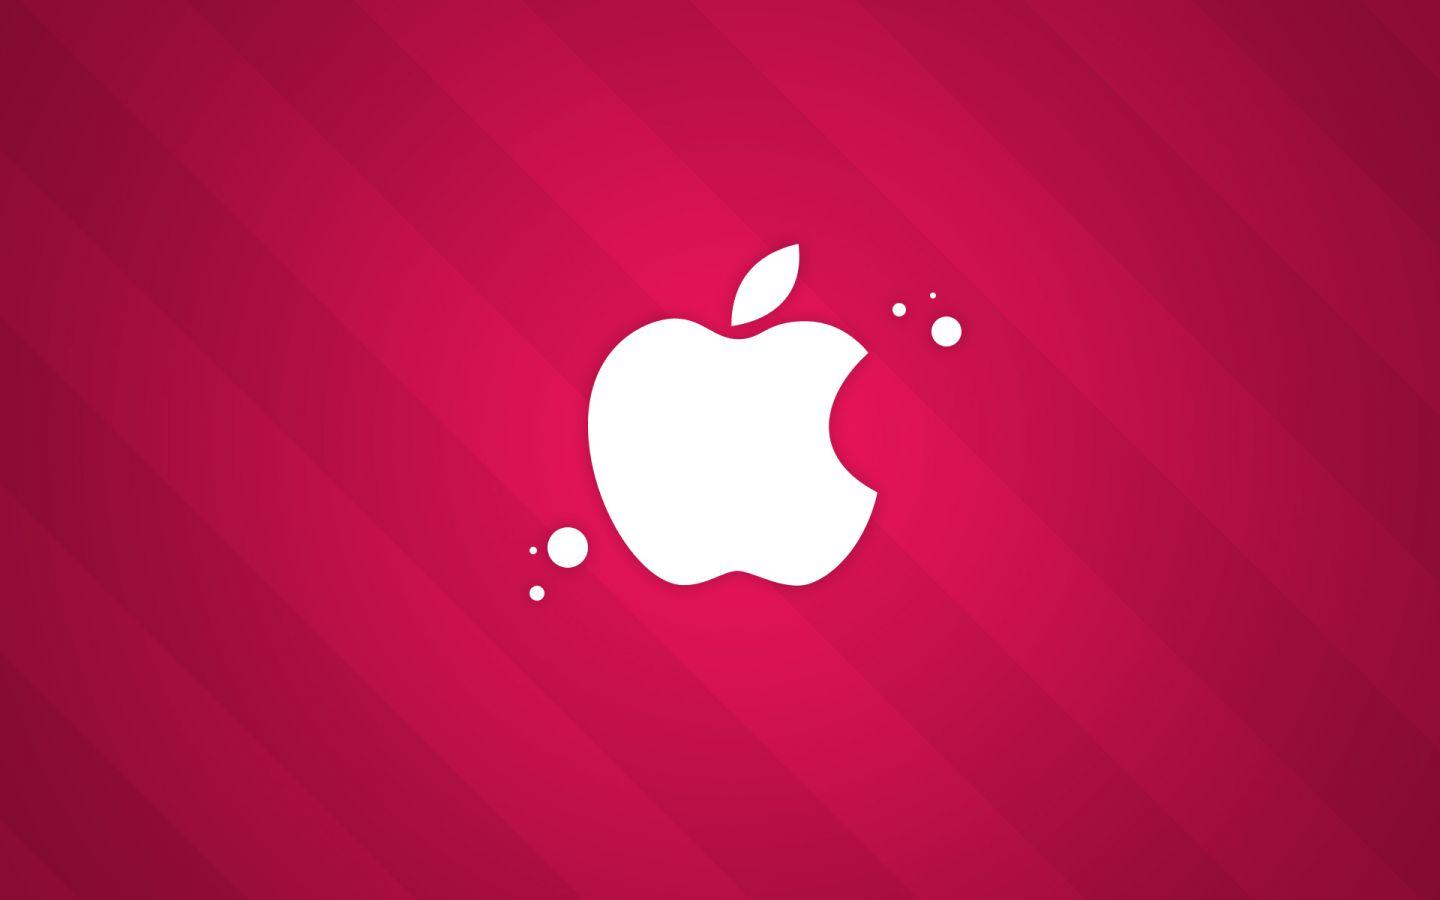 Red apple wallpapers [ apple logo ] mac